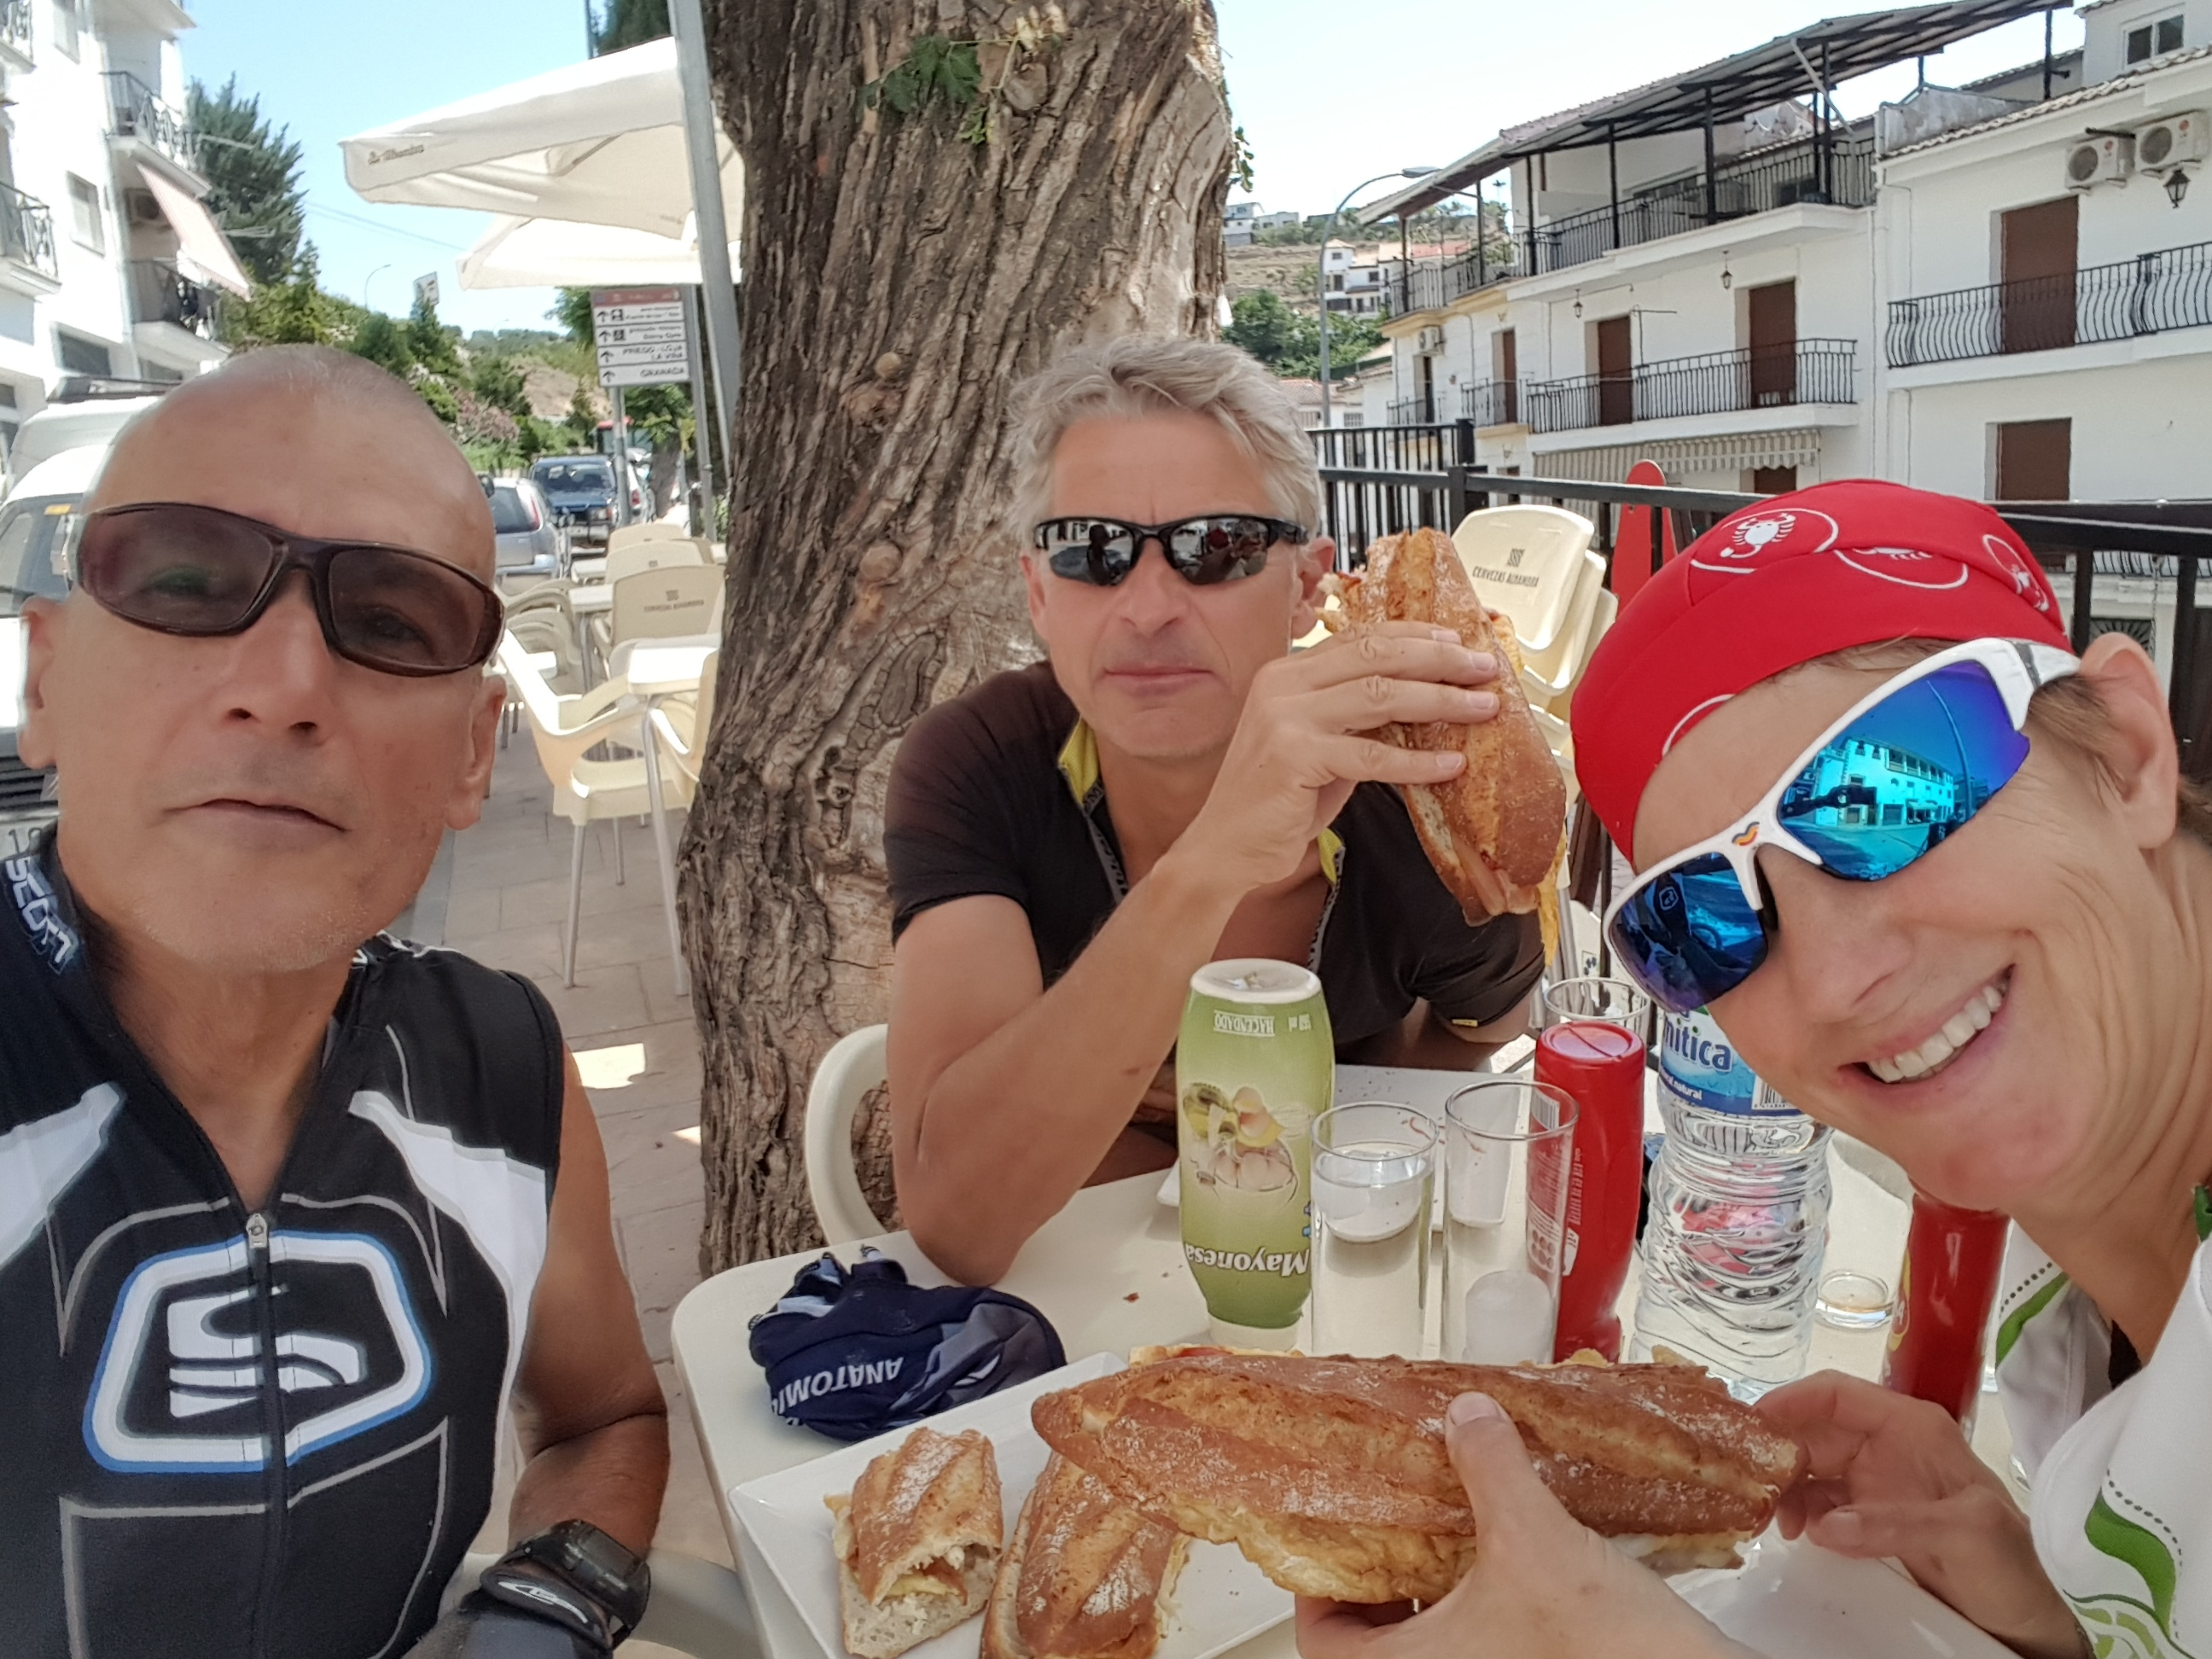 Road cycling break, Priego de Cordoba - Los Olivos Cycling & Triathlon Training Camp, Andalucia, Spain